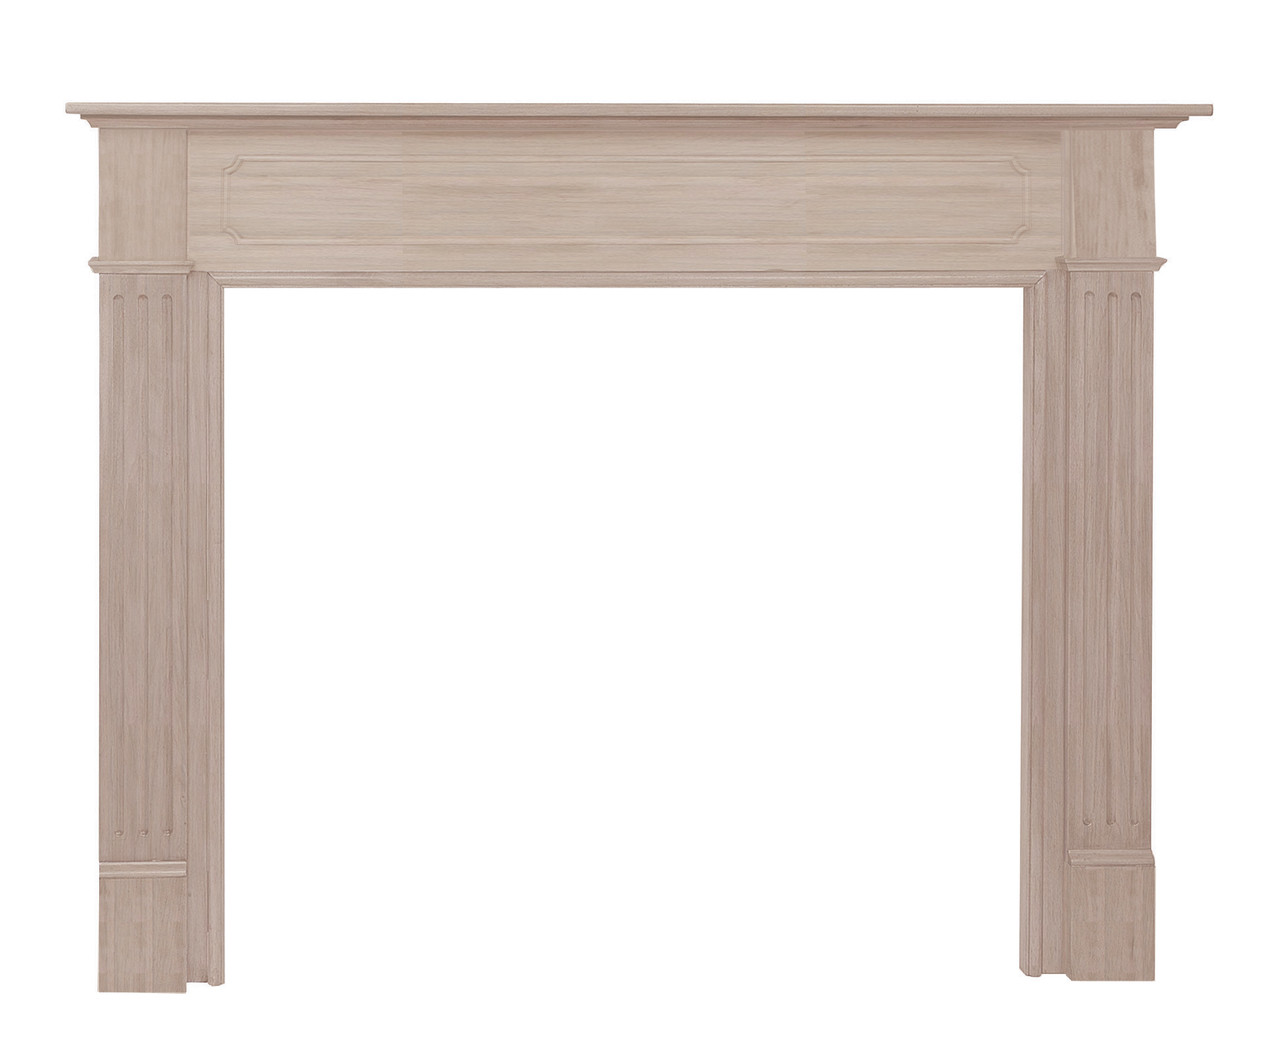 "The Williamsburg 48"" Fireplace Mantel (110-48), Unfinished"